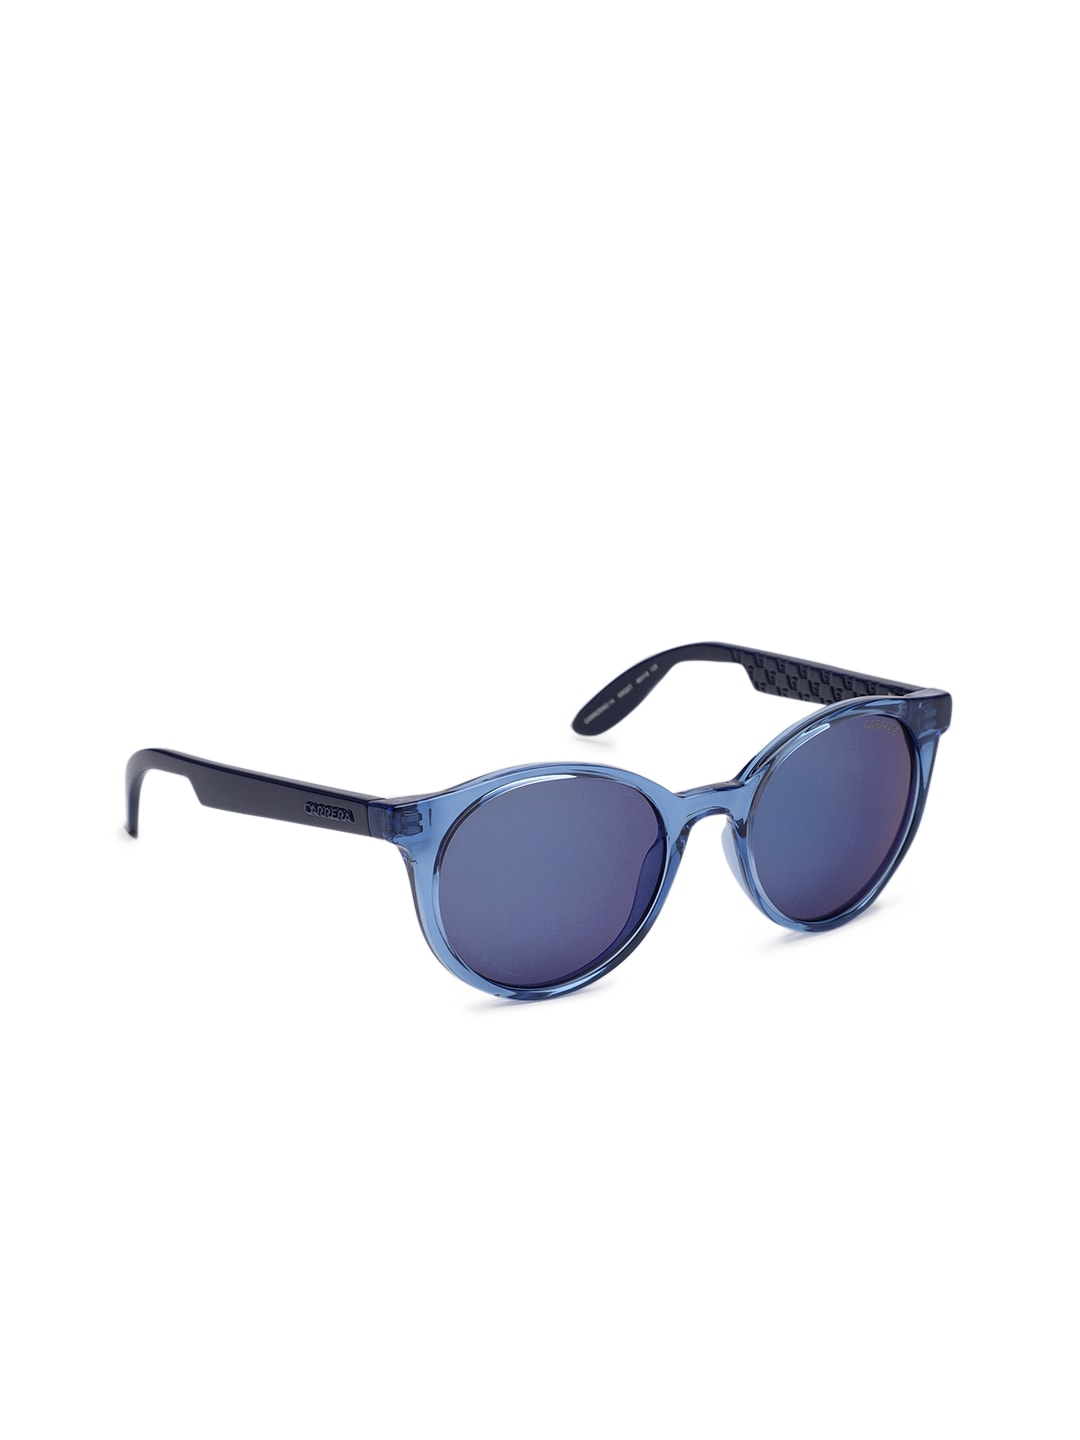 9af3e06a976d4 Sunglasses For Women - Buy Womens Sunglasses Online